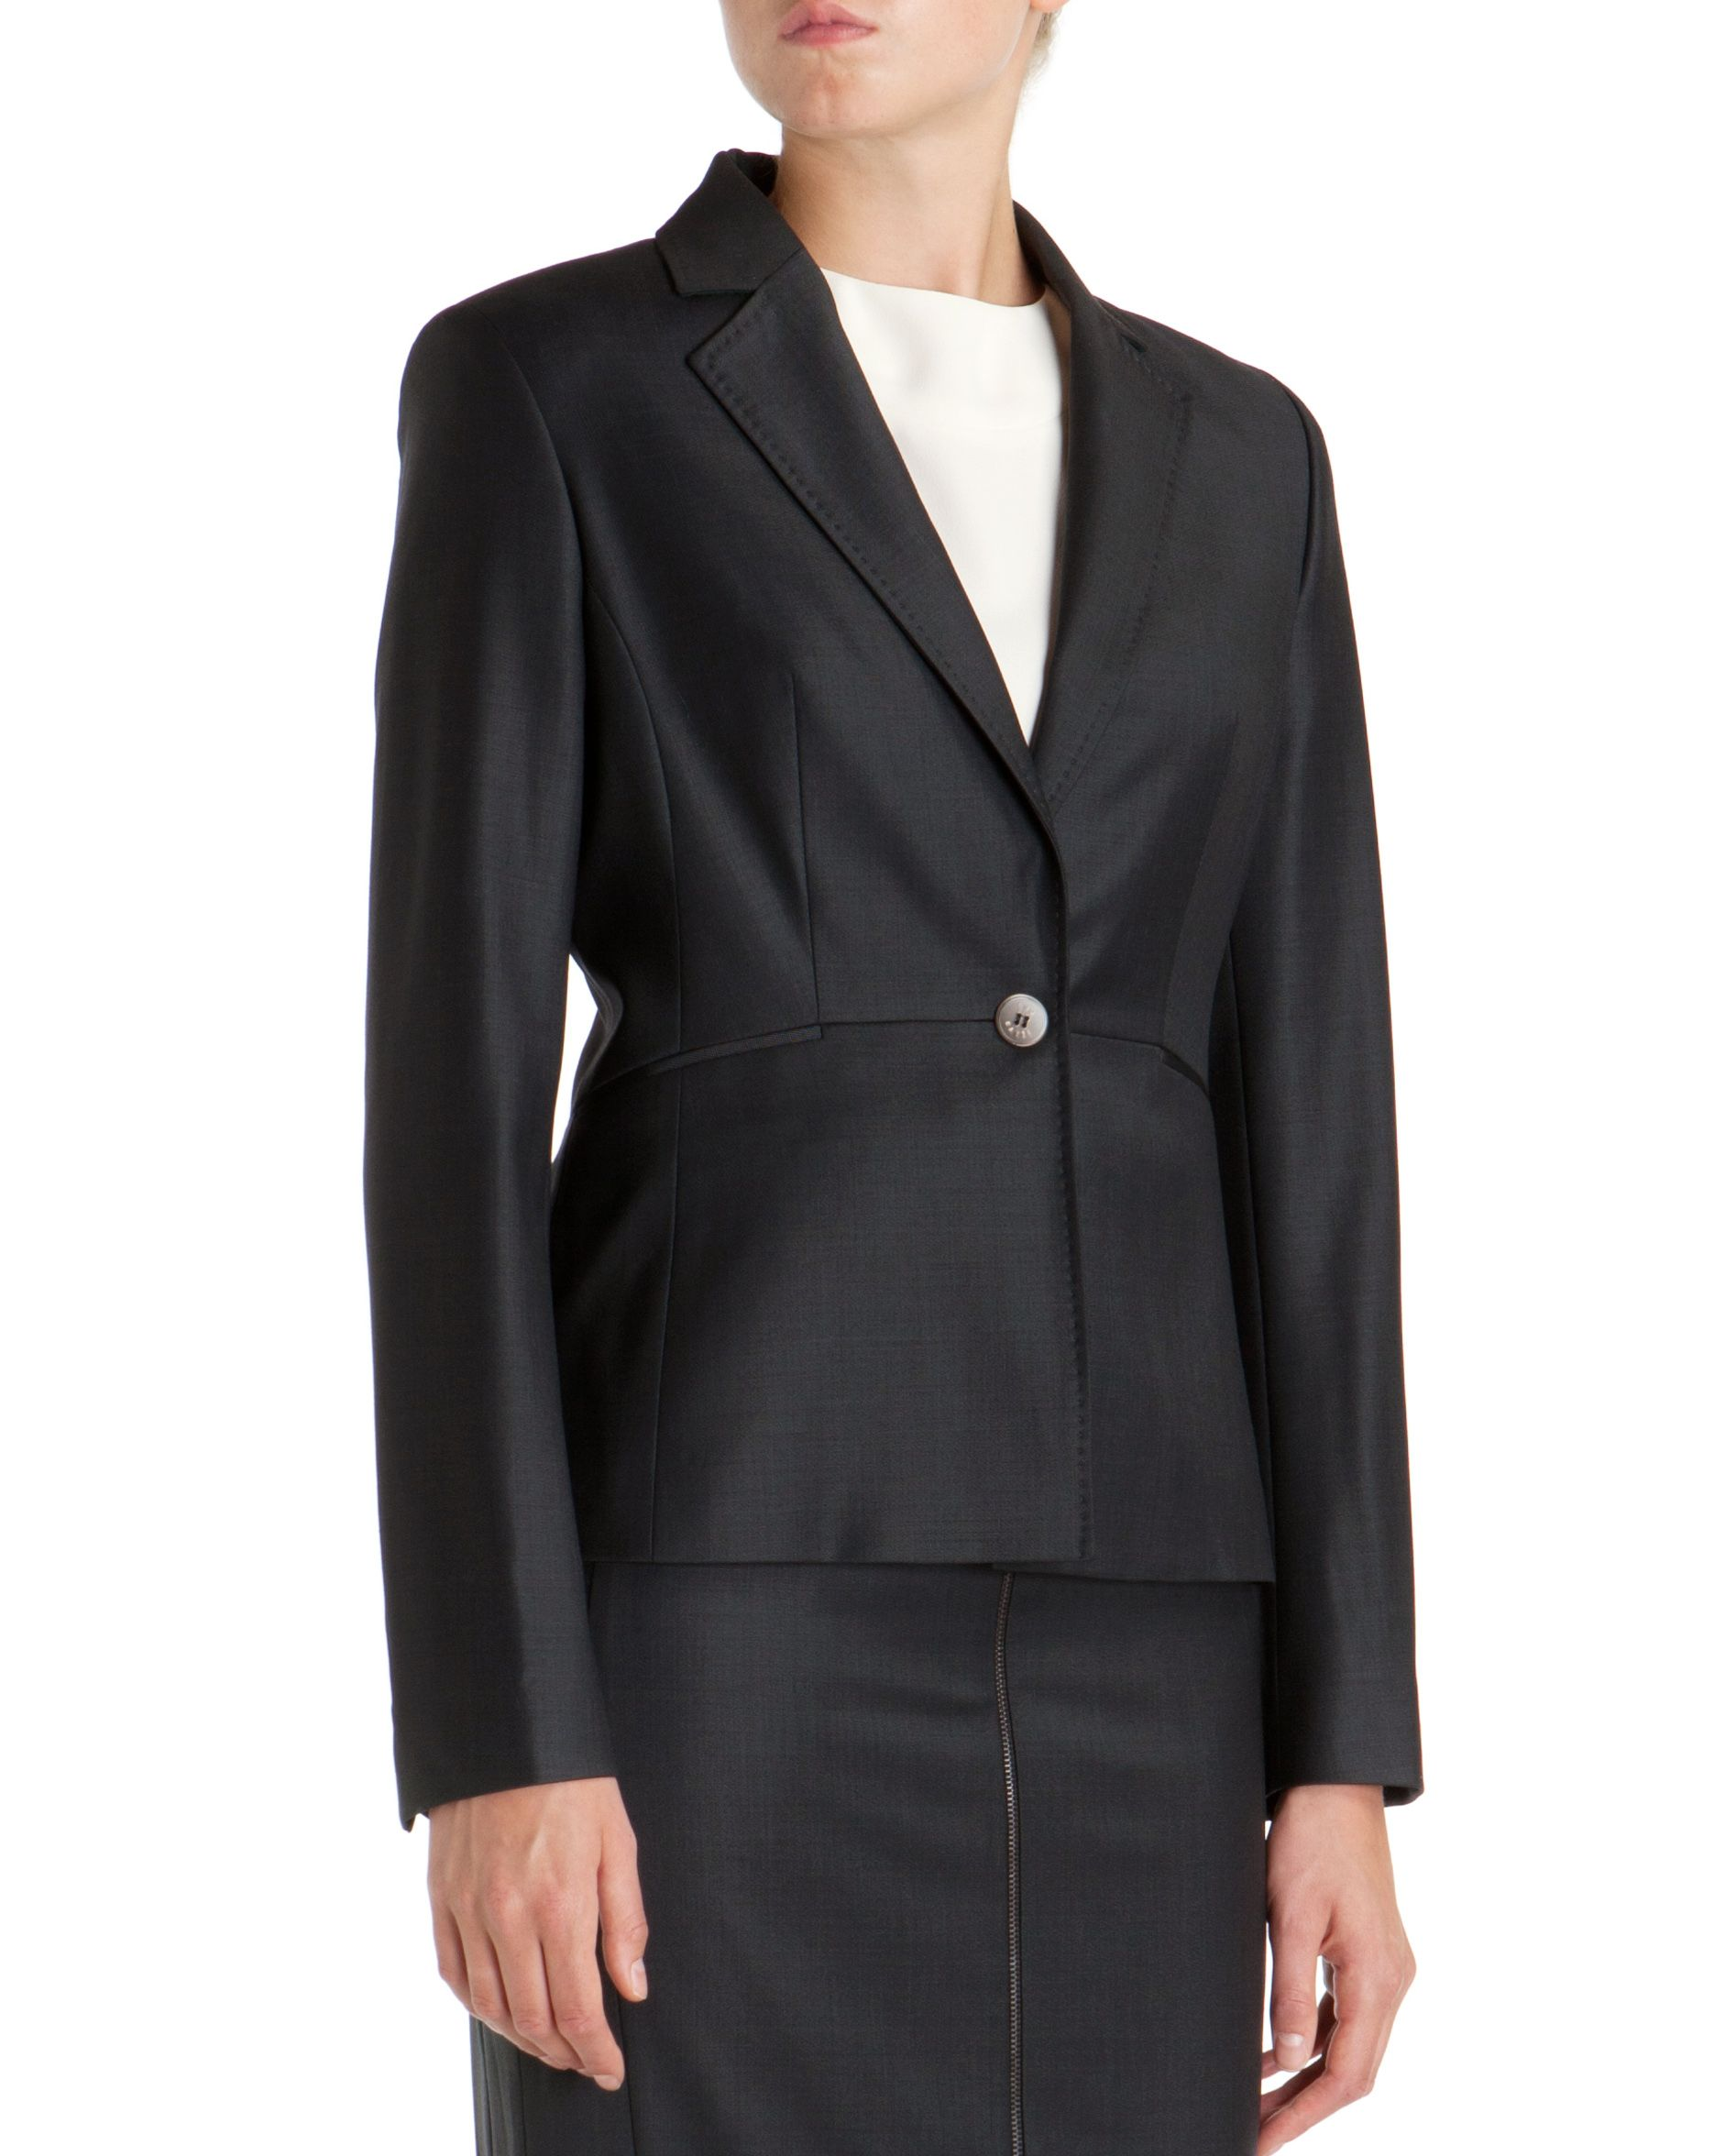 Edi tailored mohair suit jacket